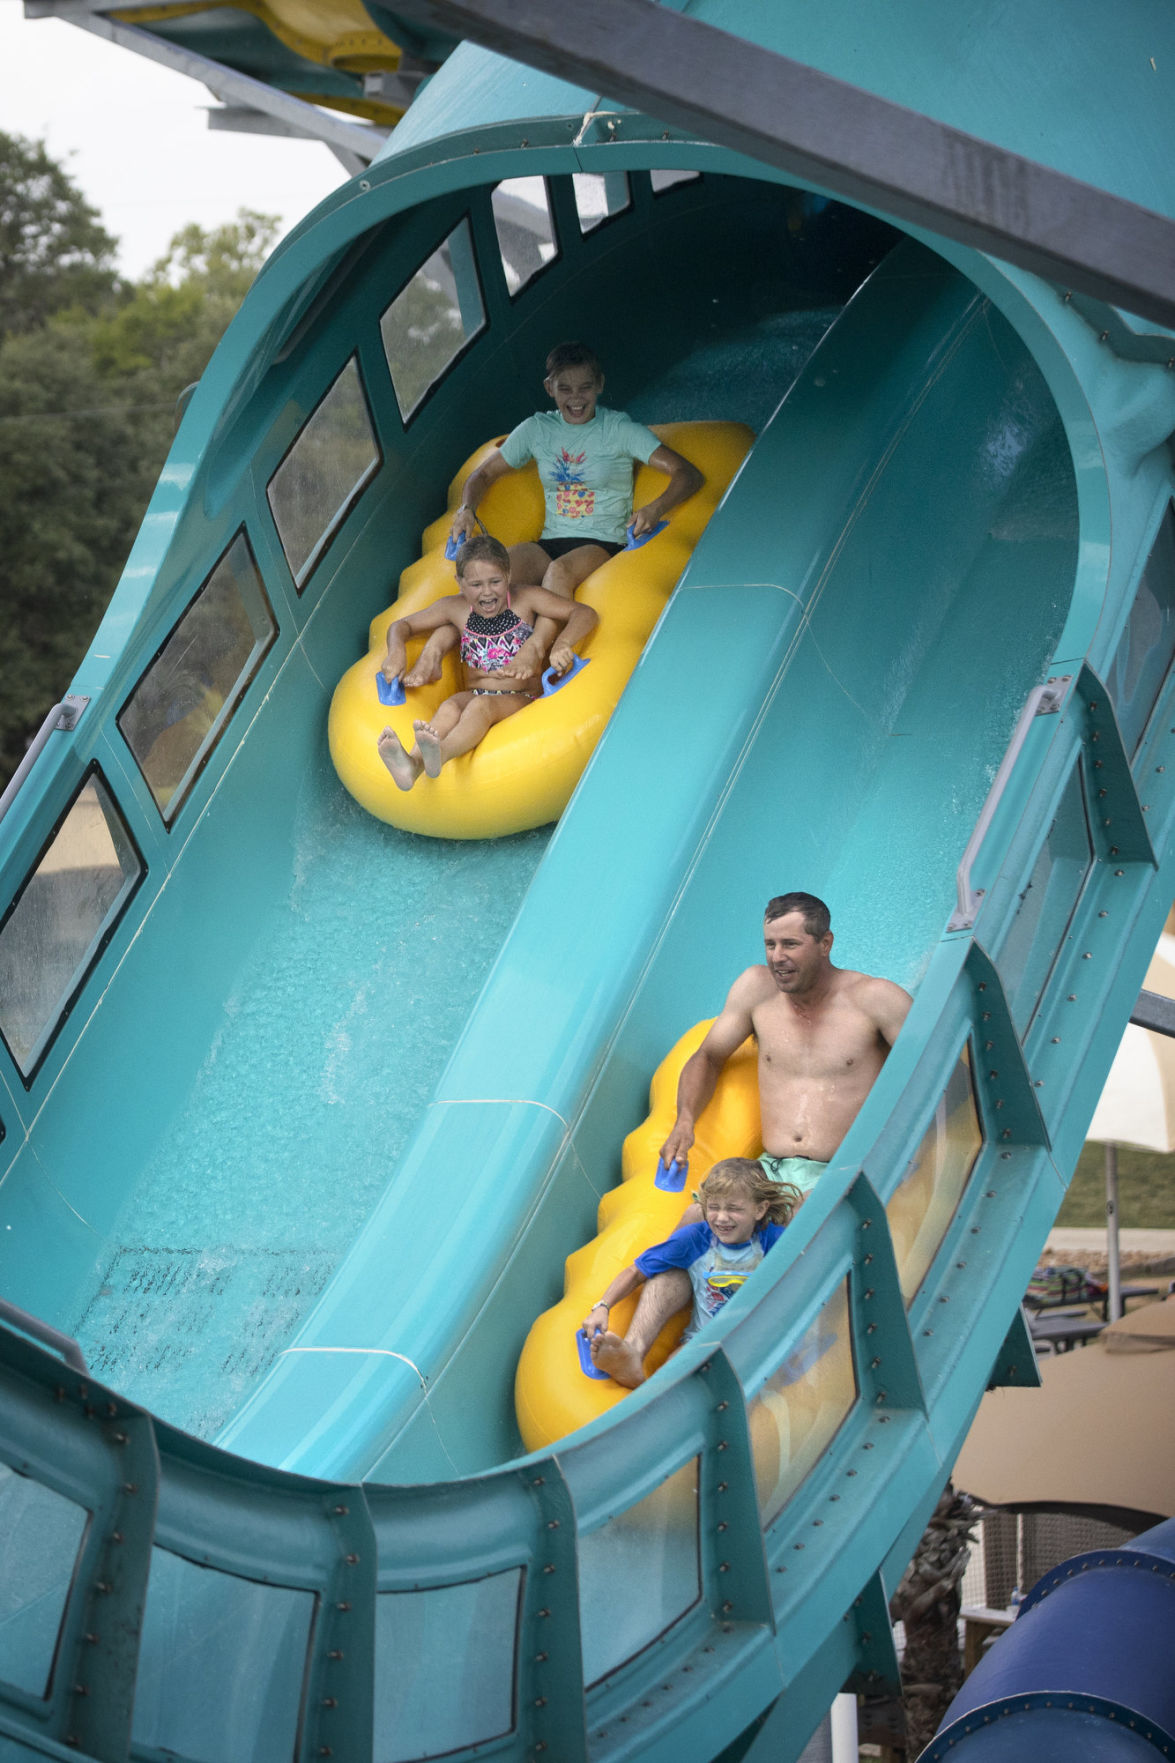 Splashway opens new water coaster